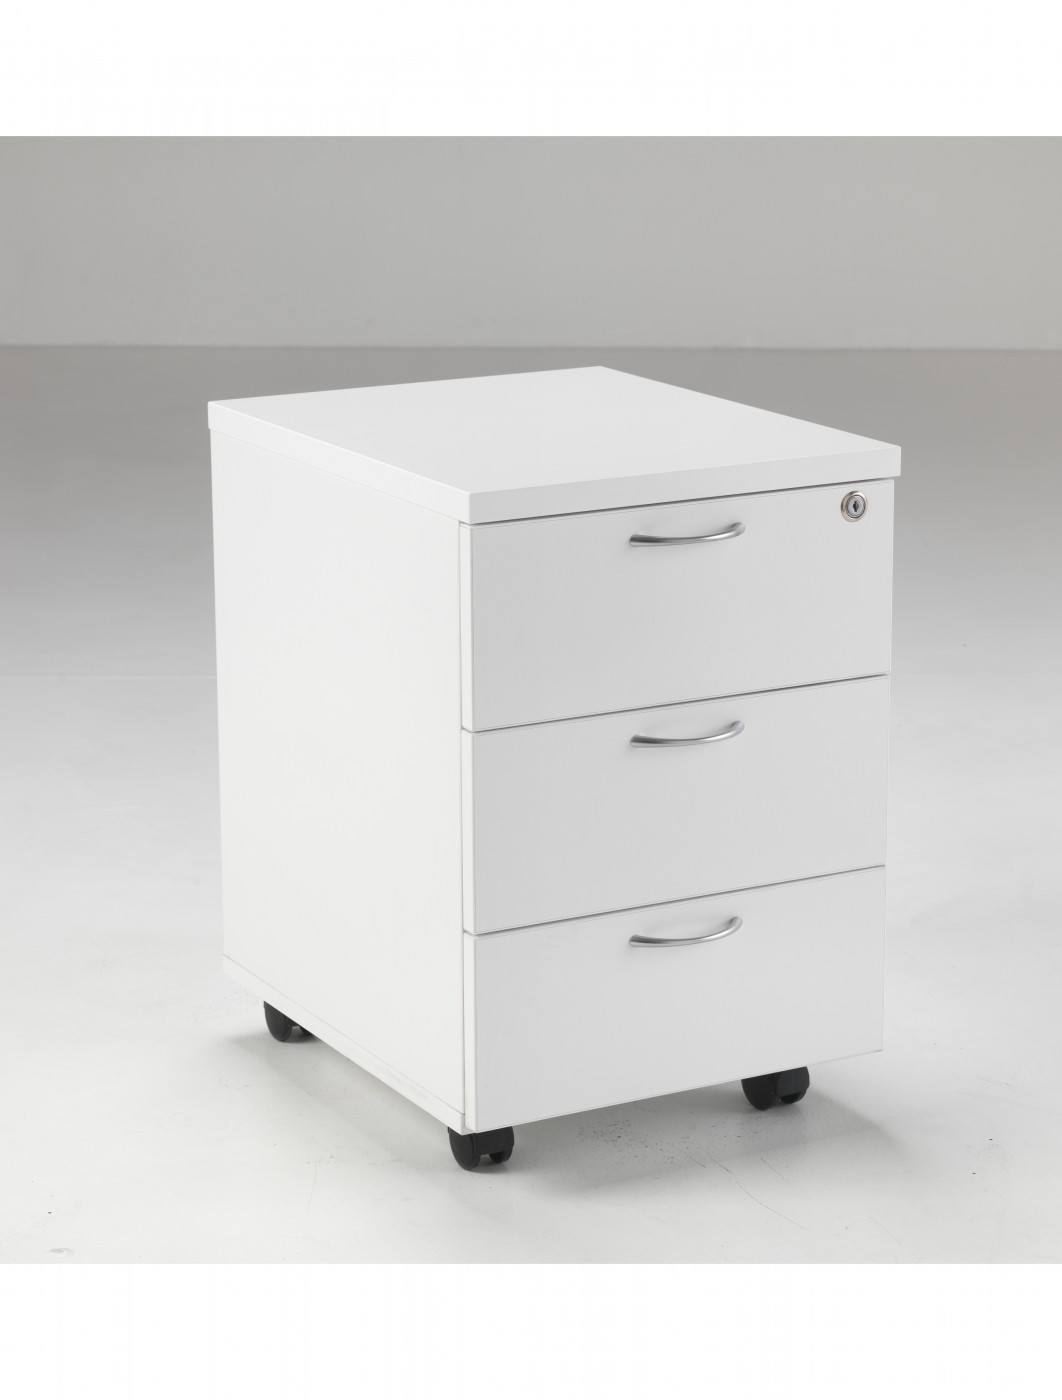 Filing cabinet lite1280bund3wh 121 office furniture - Mobile office desk ...